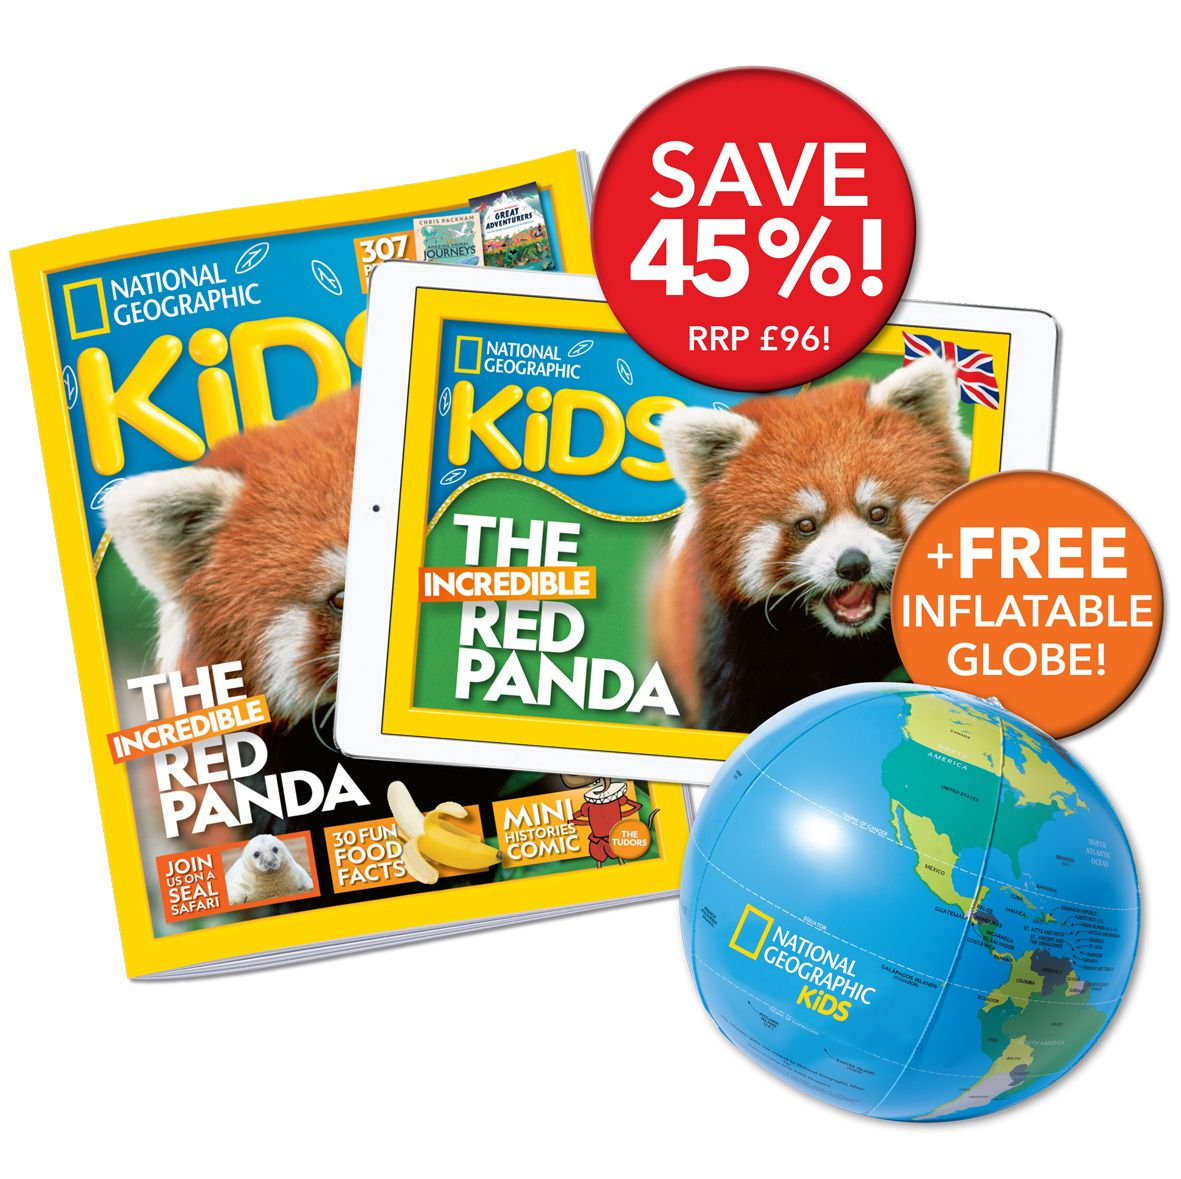 National Geographic Kids subscriptions | Entertain, educate and inspire